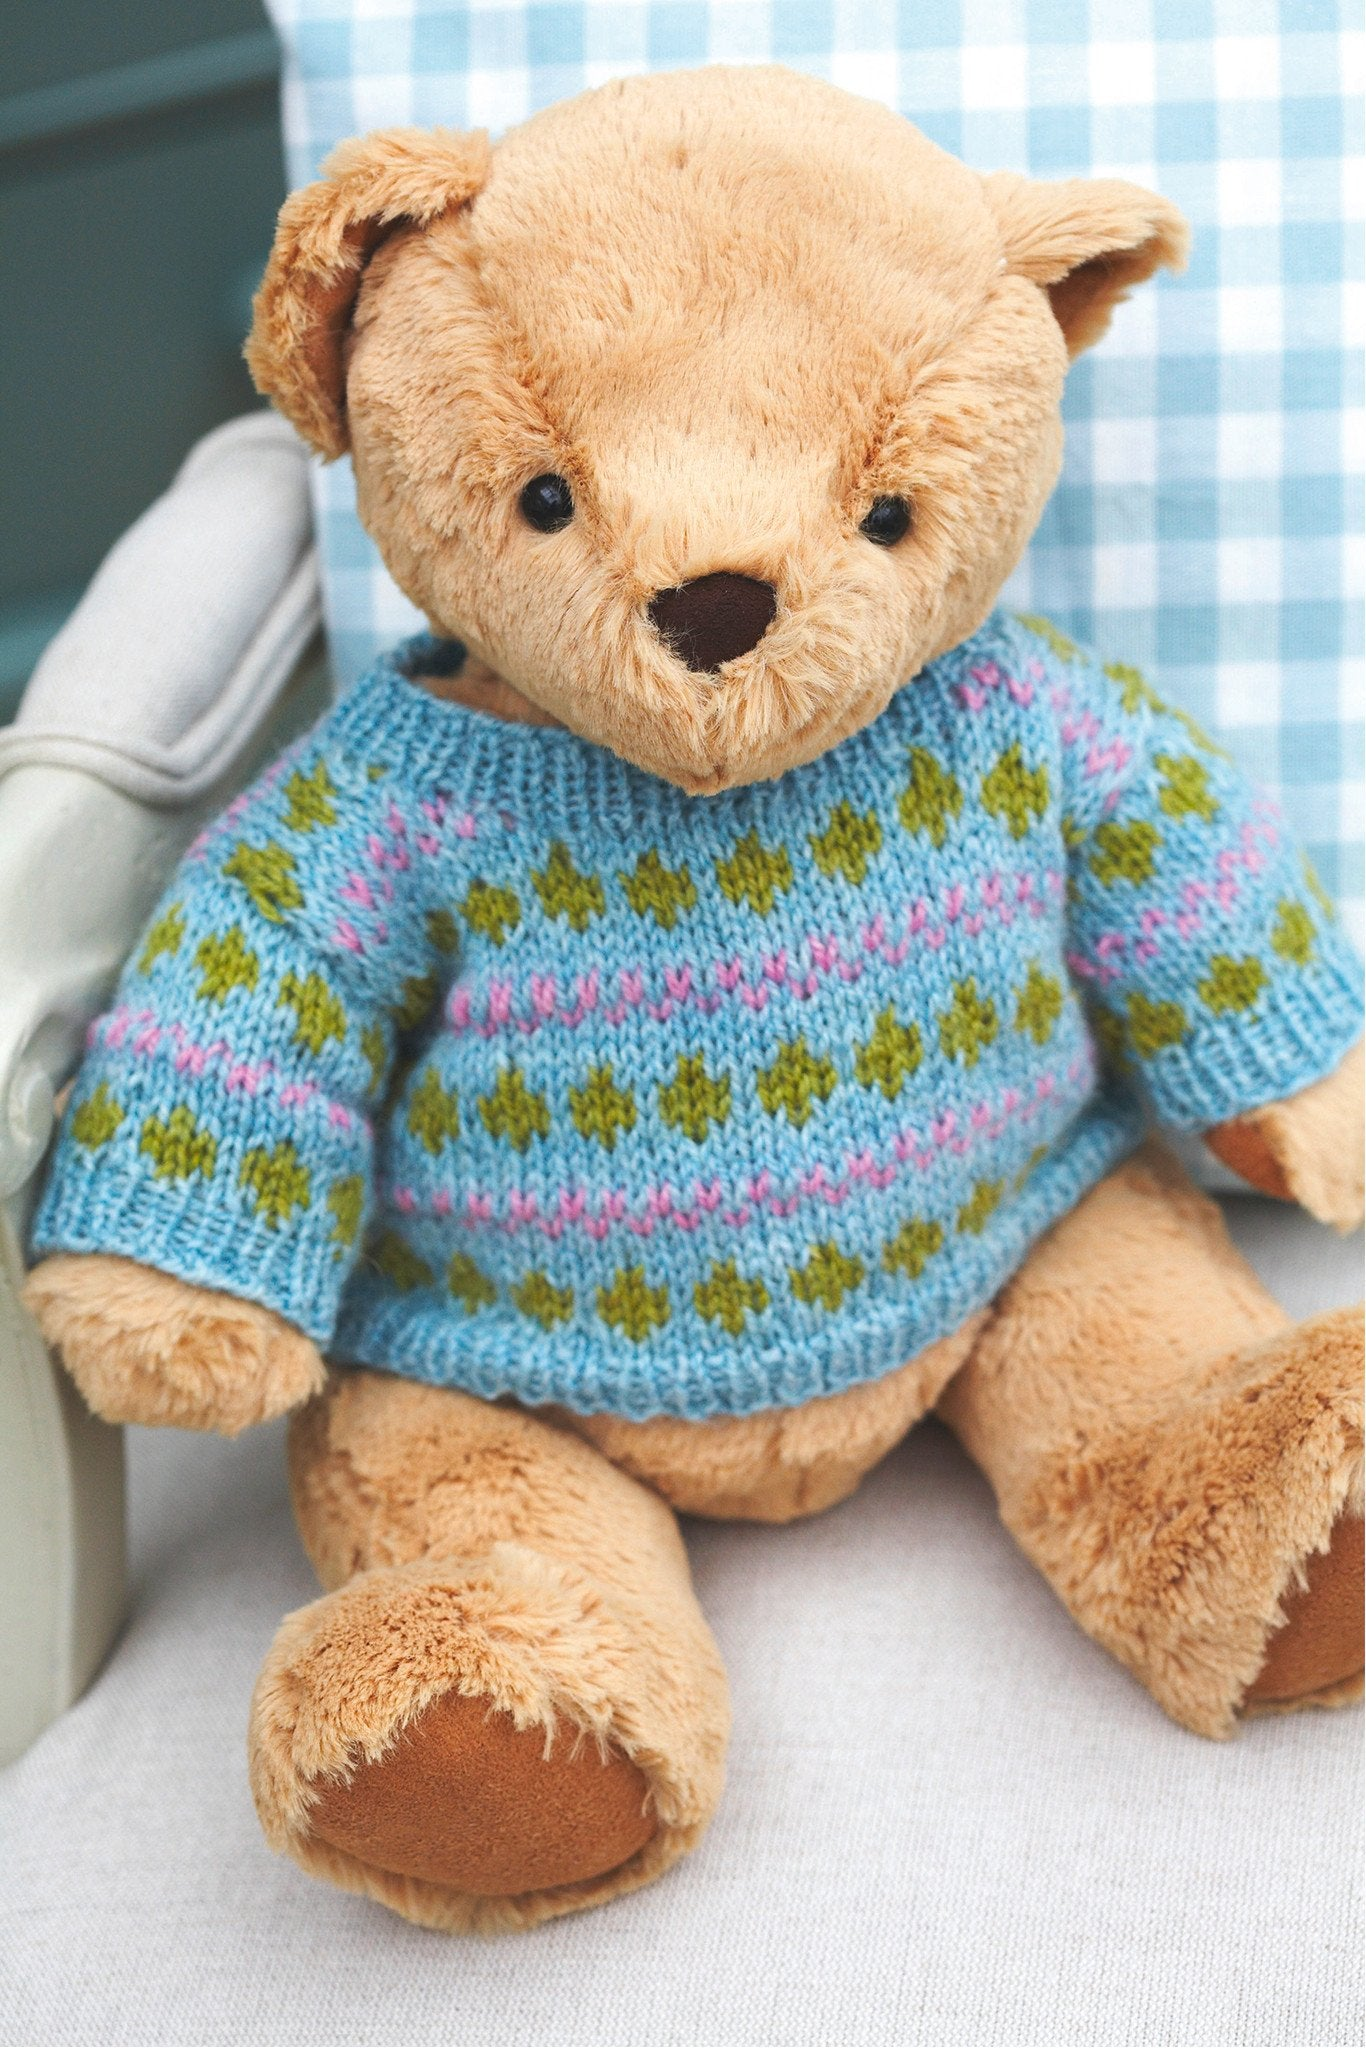 Vintage Jumper For Teddy Bear Knitting Pattern – The Knitting Network